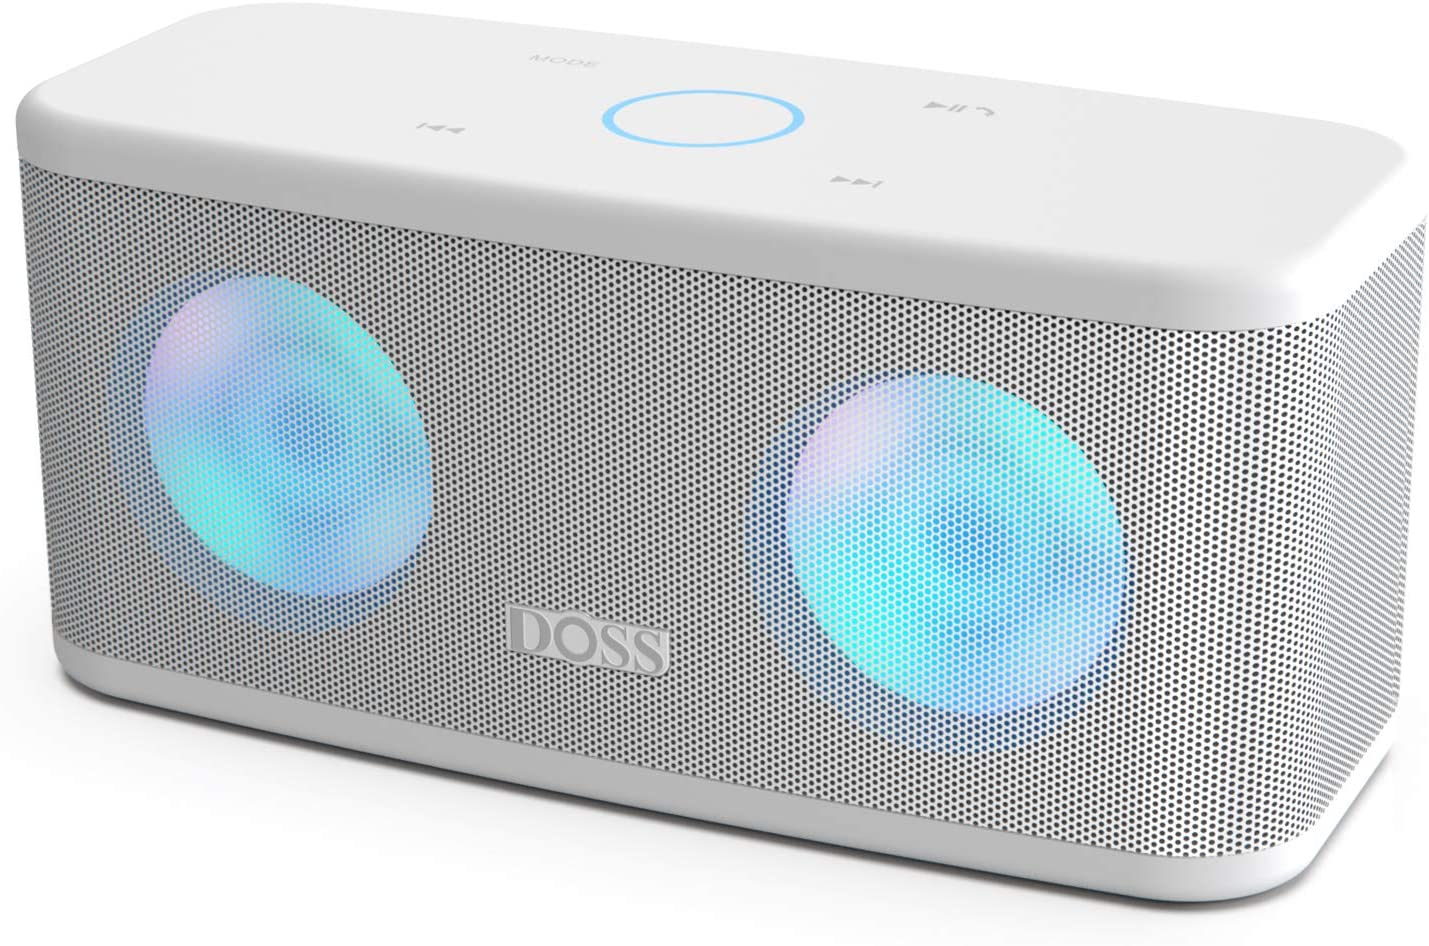 DOSS SoundBox Plus Portable Wireless Bluetooth Speaker with HD Sound and Deep Bass, Wireless Stereo Pairing, Built-in Mic, 20H Playtime, Portable Wireless Speaker for Home, Outdoor, Travel-White